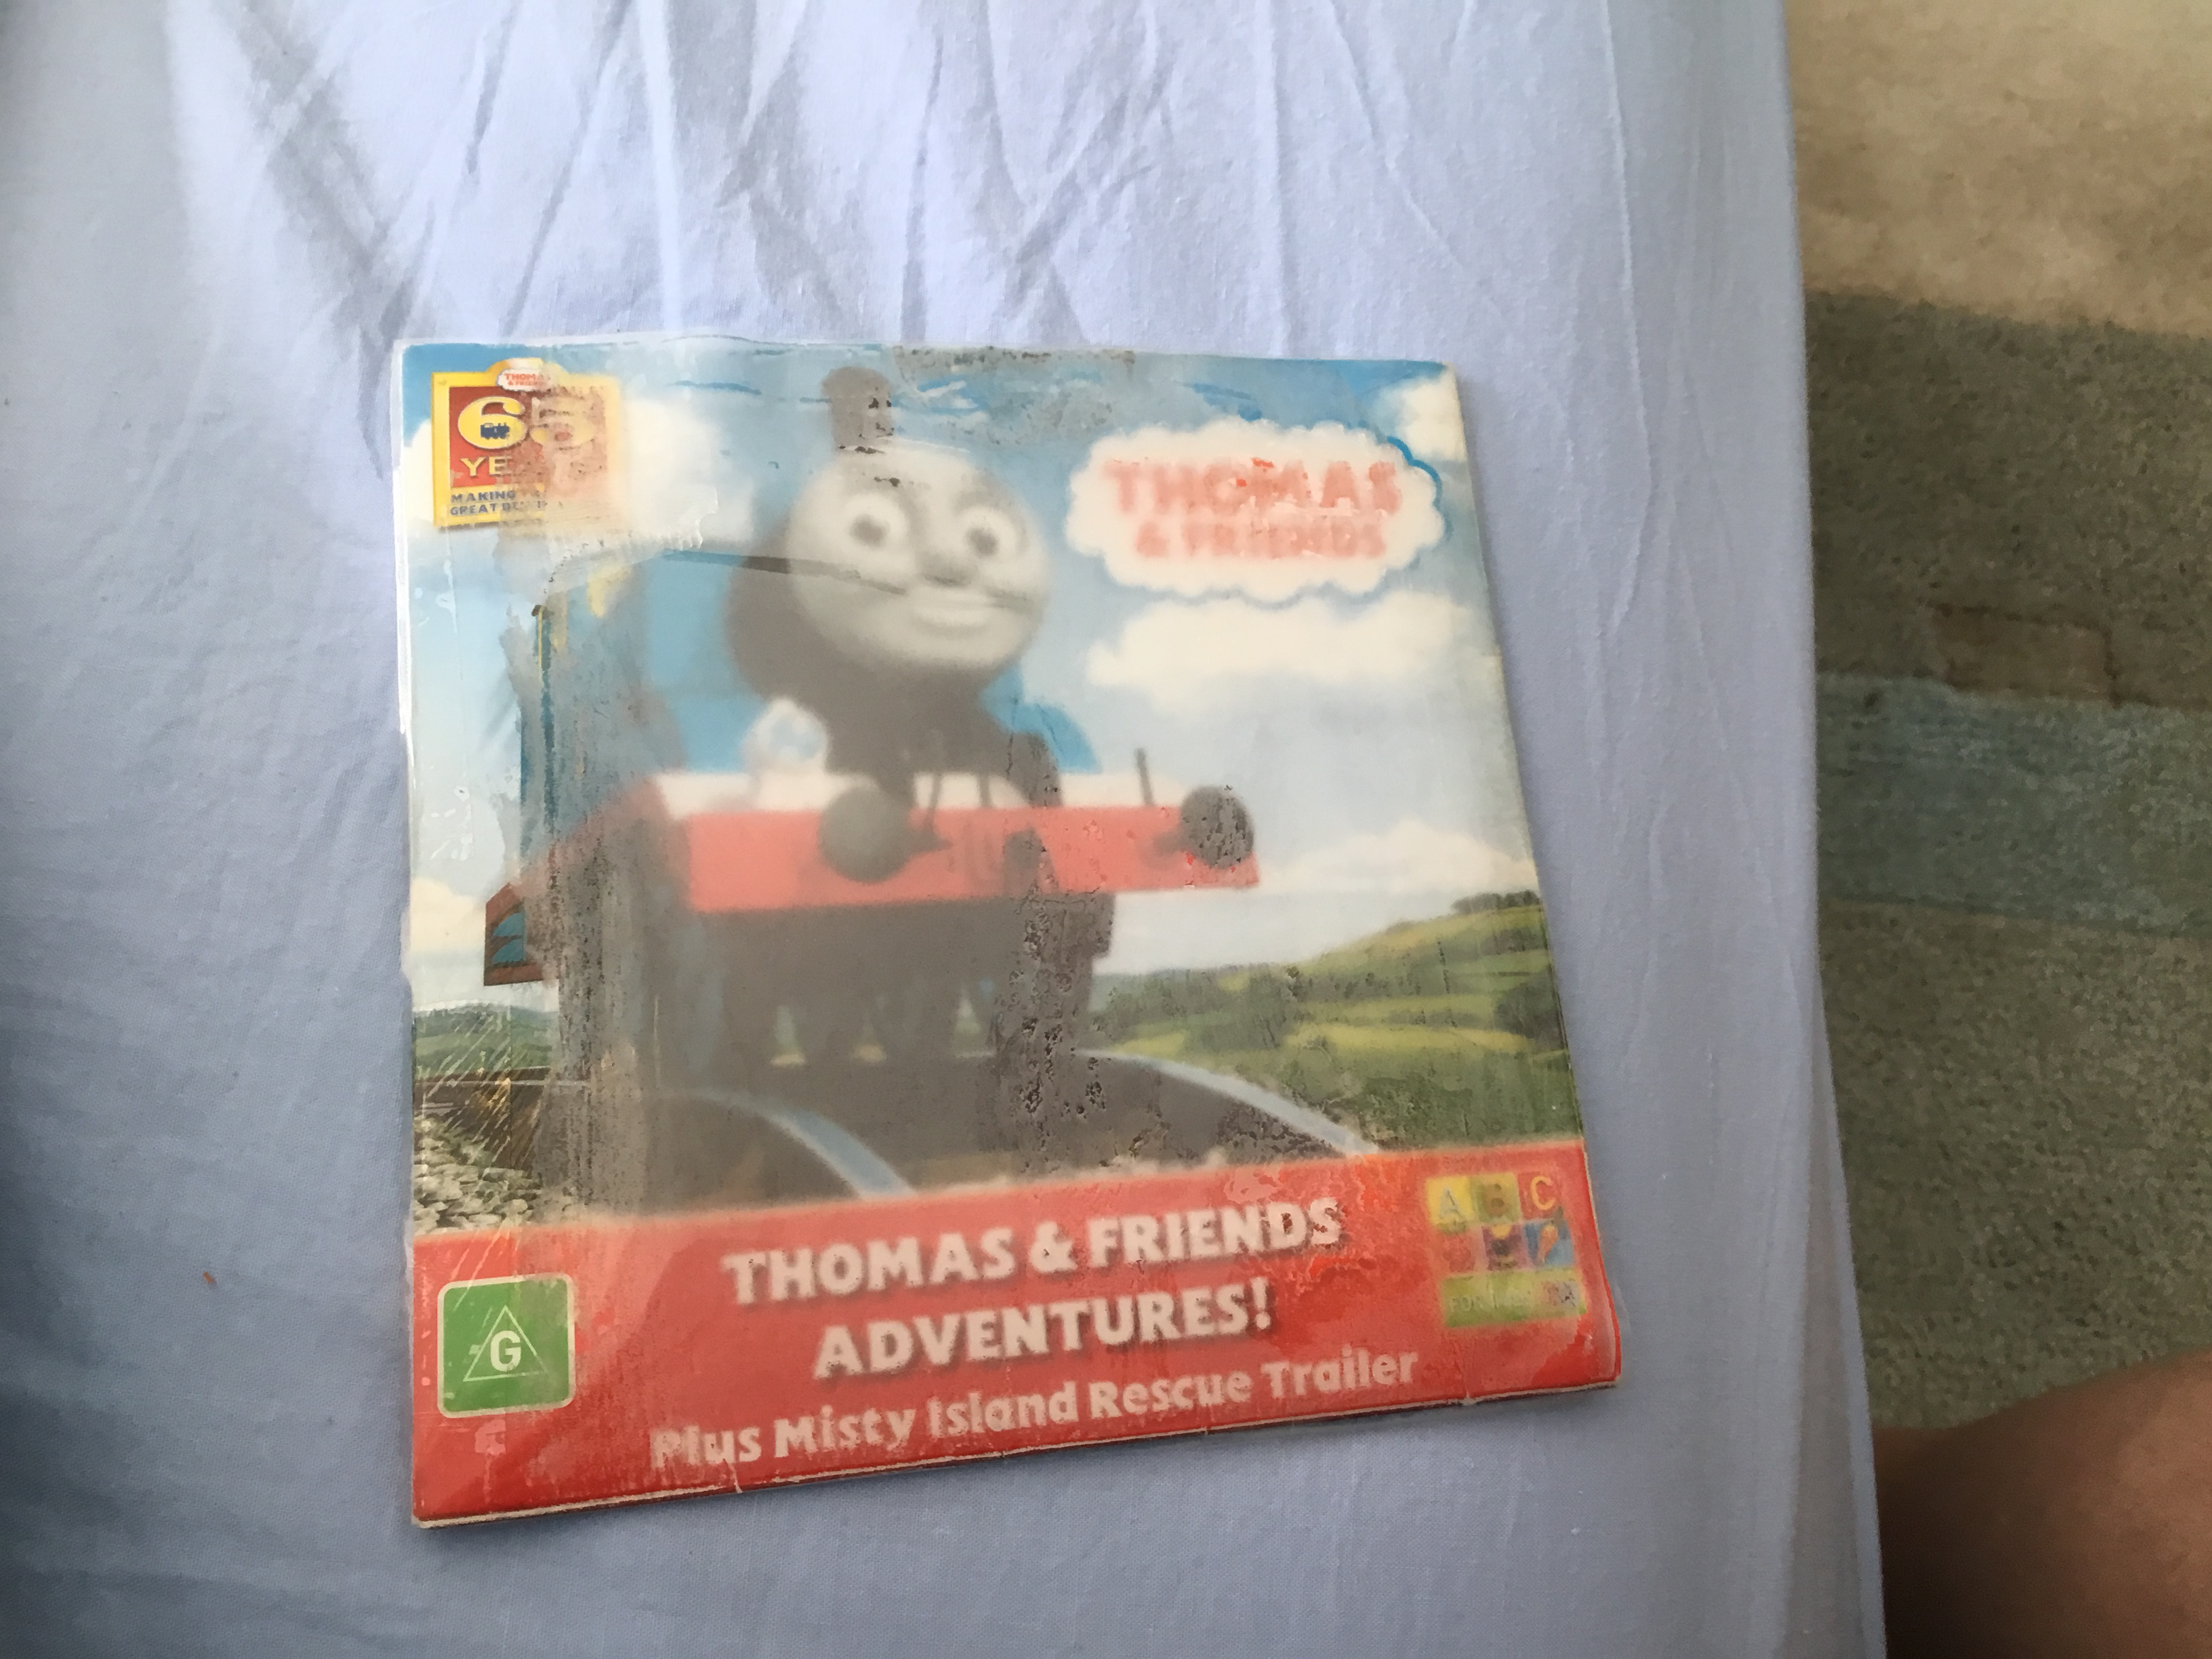 Thomas & Friends Adventures! (Australian DVD)